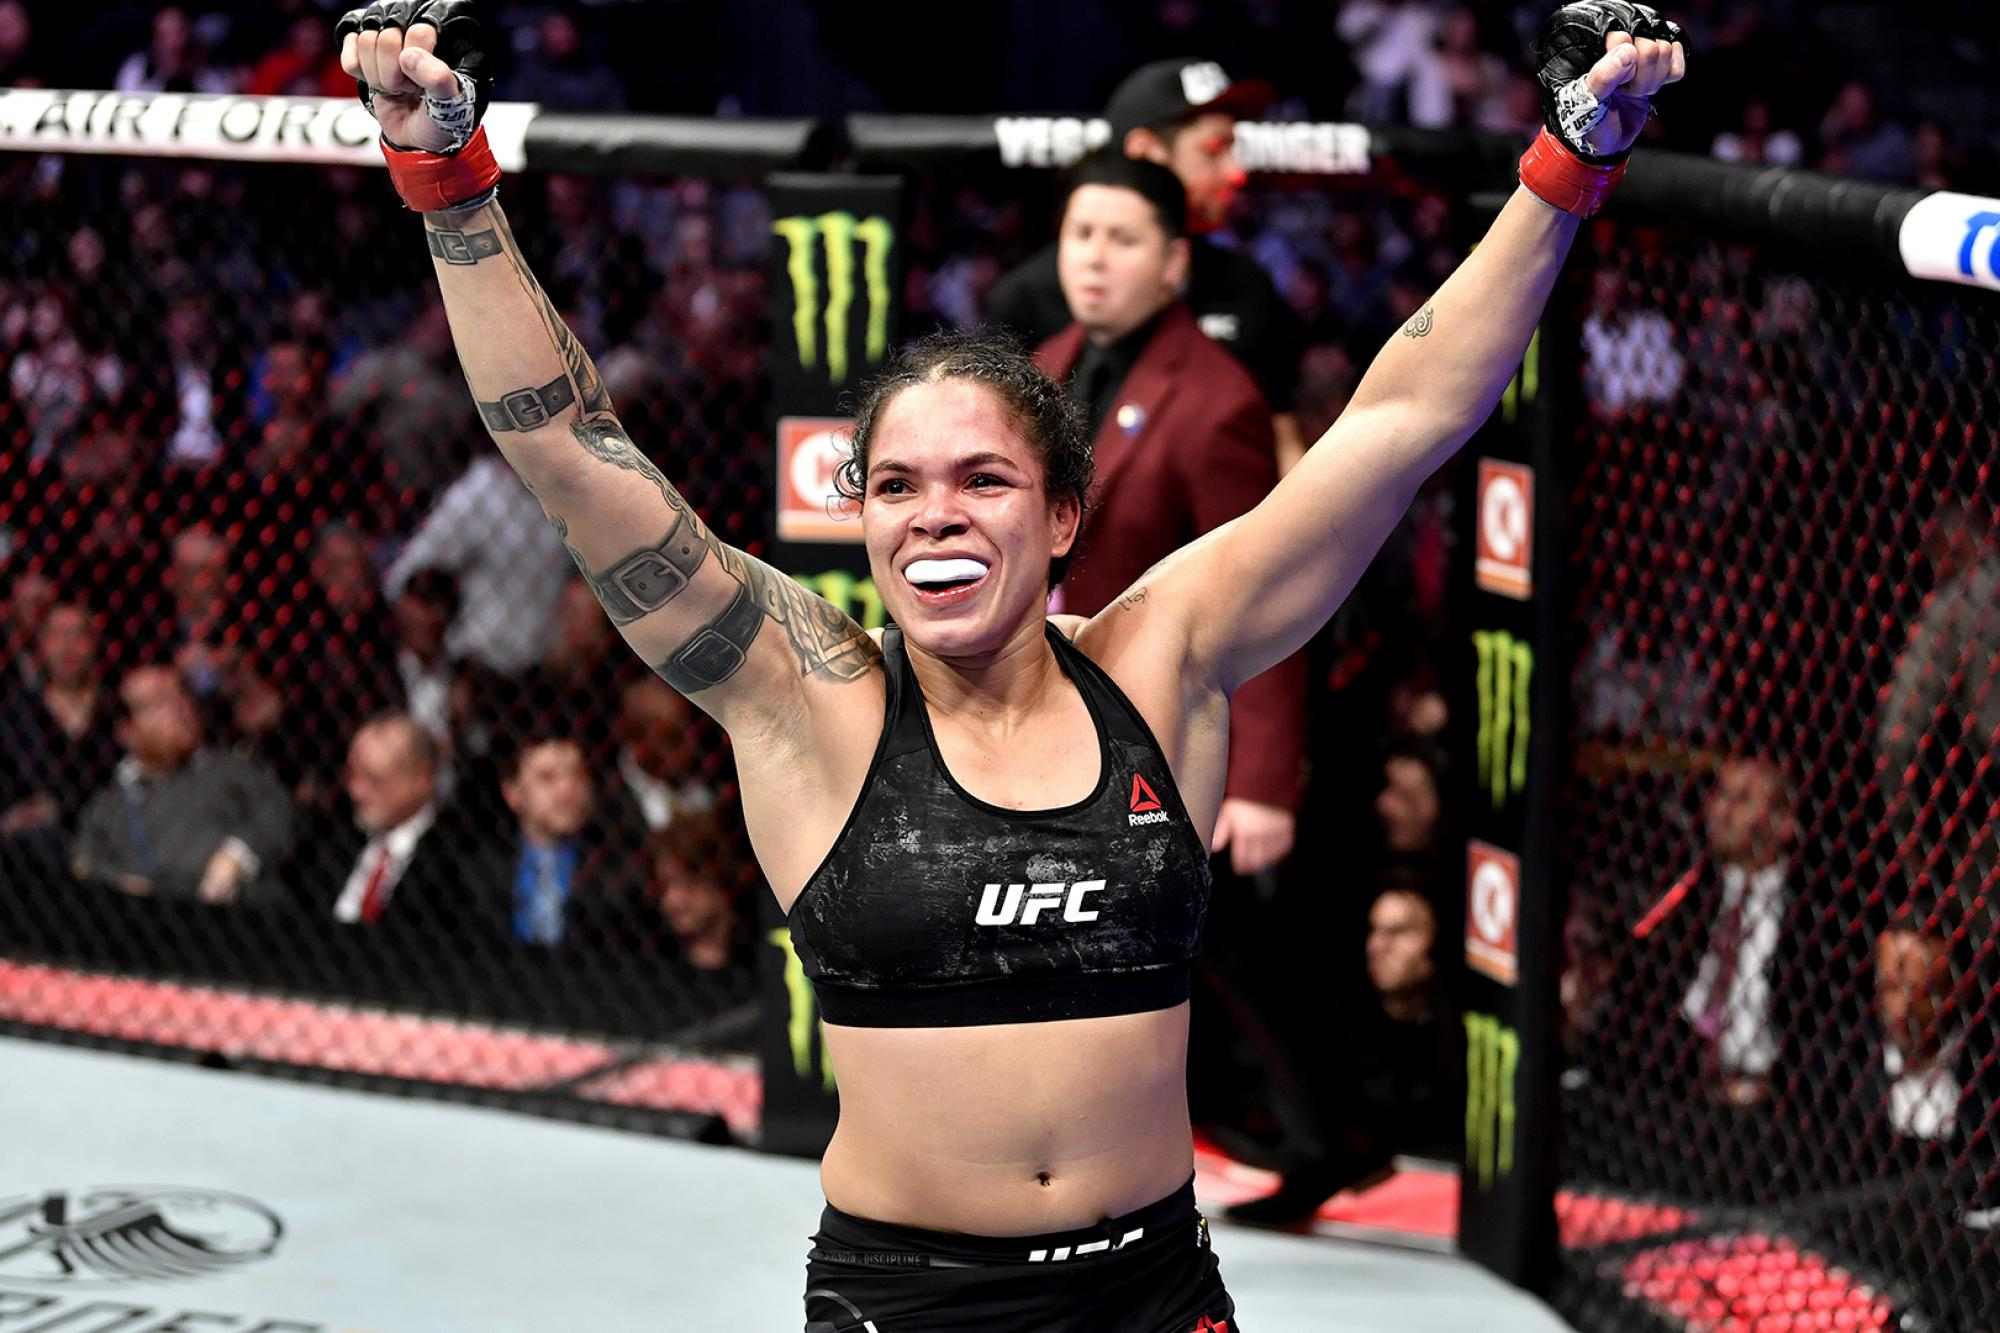 The 32-year old daughter of father (?) and mother(?) Amanda Nunes in 2020 photo. Amanda Nunes earned a million dollar salary - leaving the net worth at million in 2020